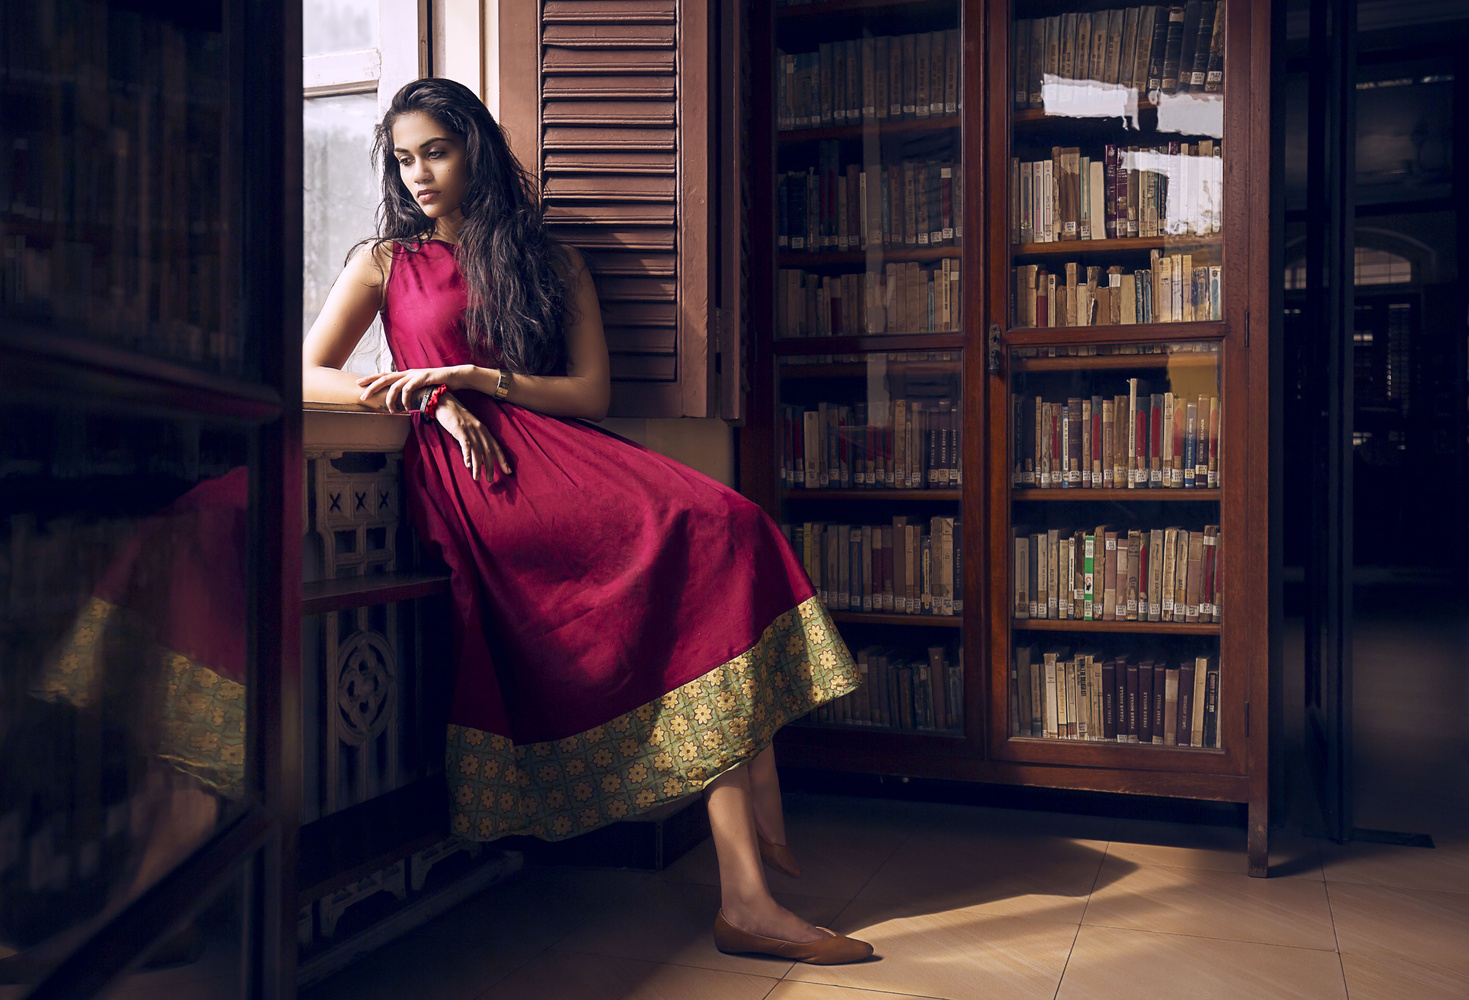 At the Library by Rani George